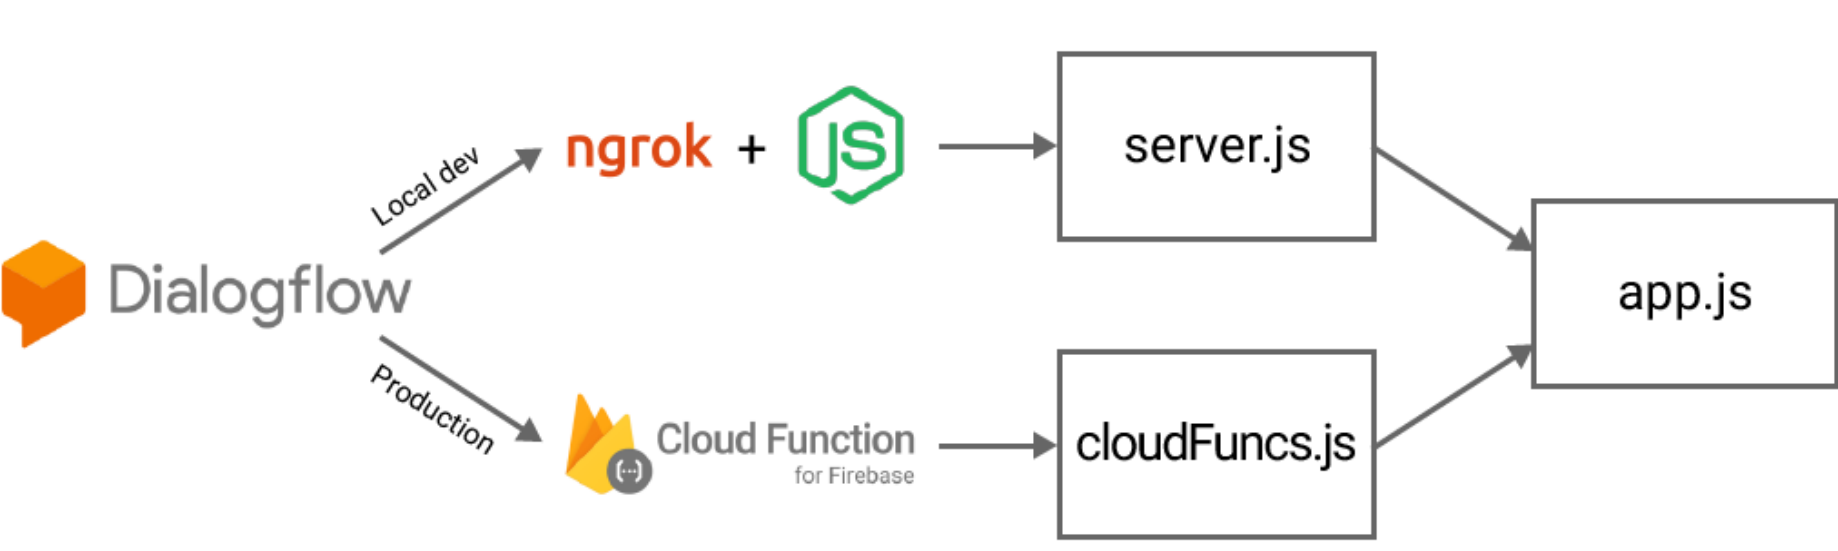 Dialogflow web hooks: how to develop locally and deploy to Cloud